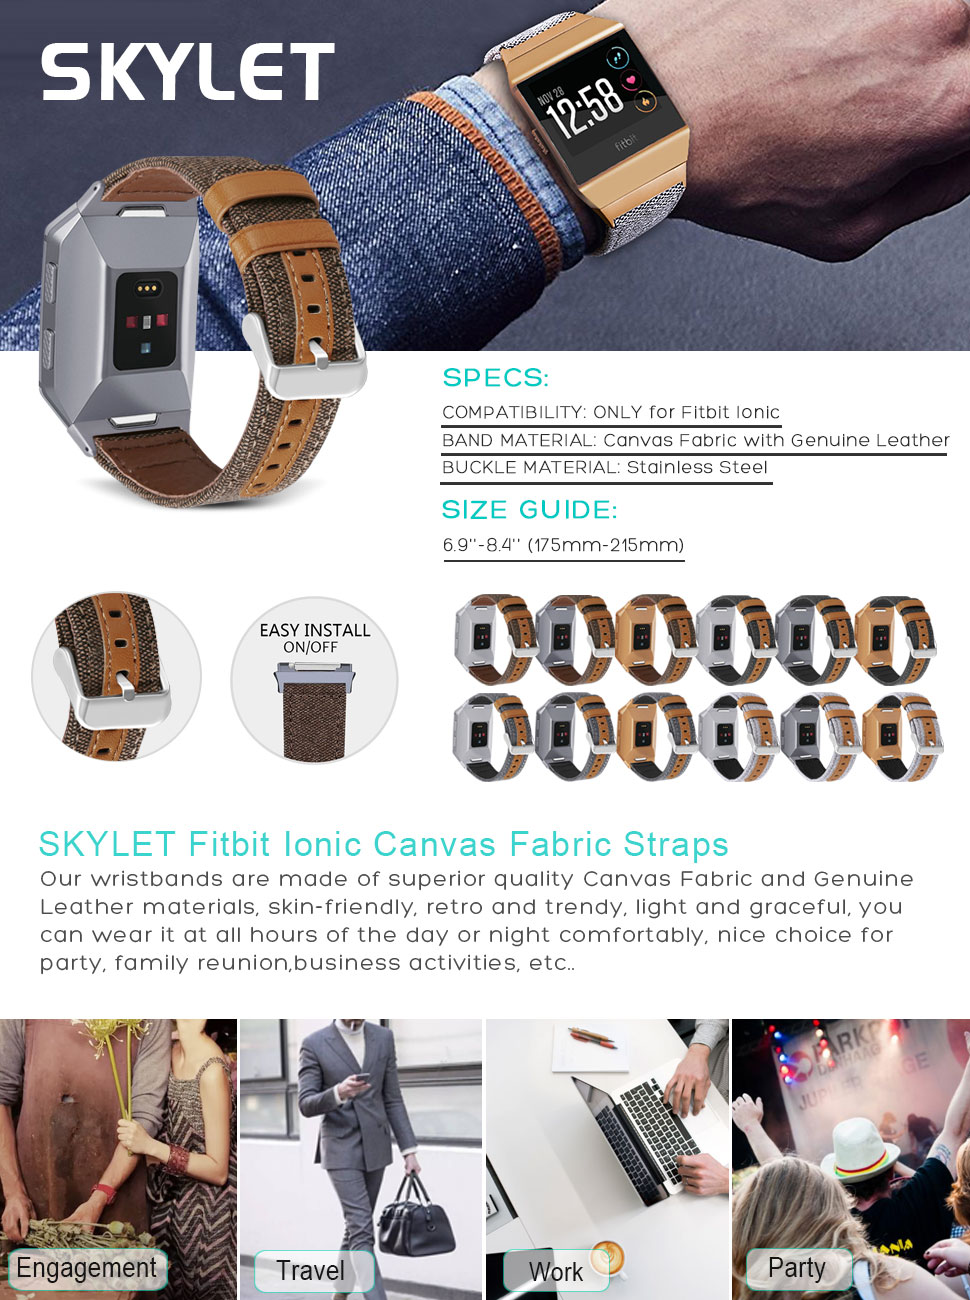 SKYLET Bands for Fitbit Ionic, Canvas Fabric with Genuine Leather Straps  with Metal Clasp for Fitbit Ionic Smart Watch (Smart Watch Not Included)